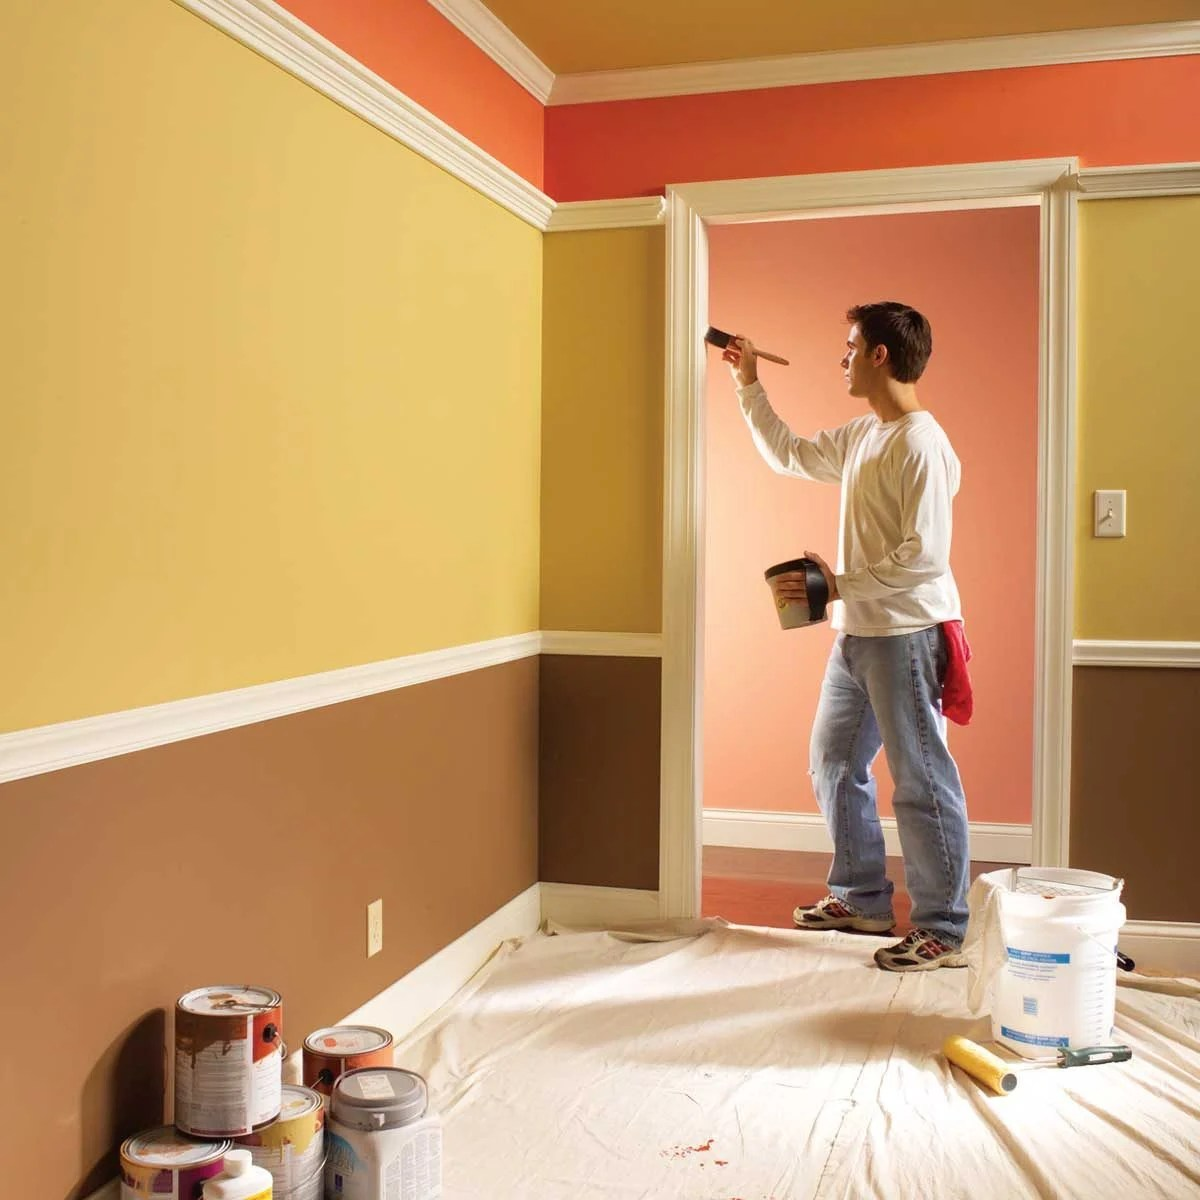 10 Interior Painting Tips For Flawless Walls | Reader's ... on House Painting Ideas  id=21327